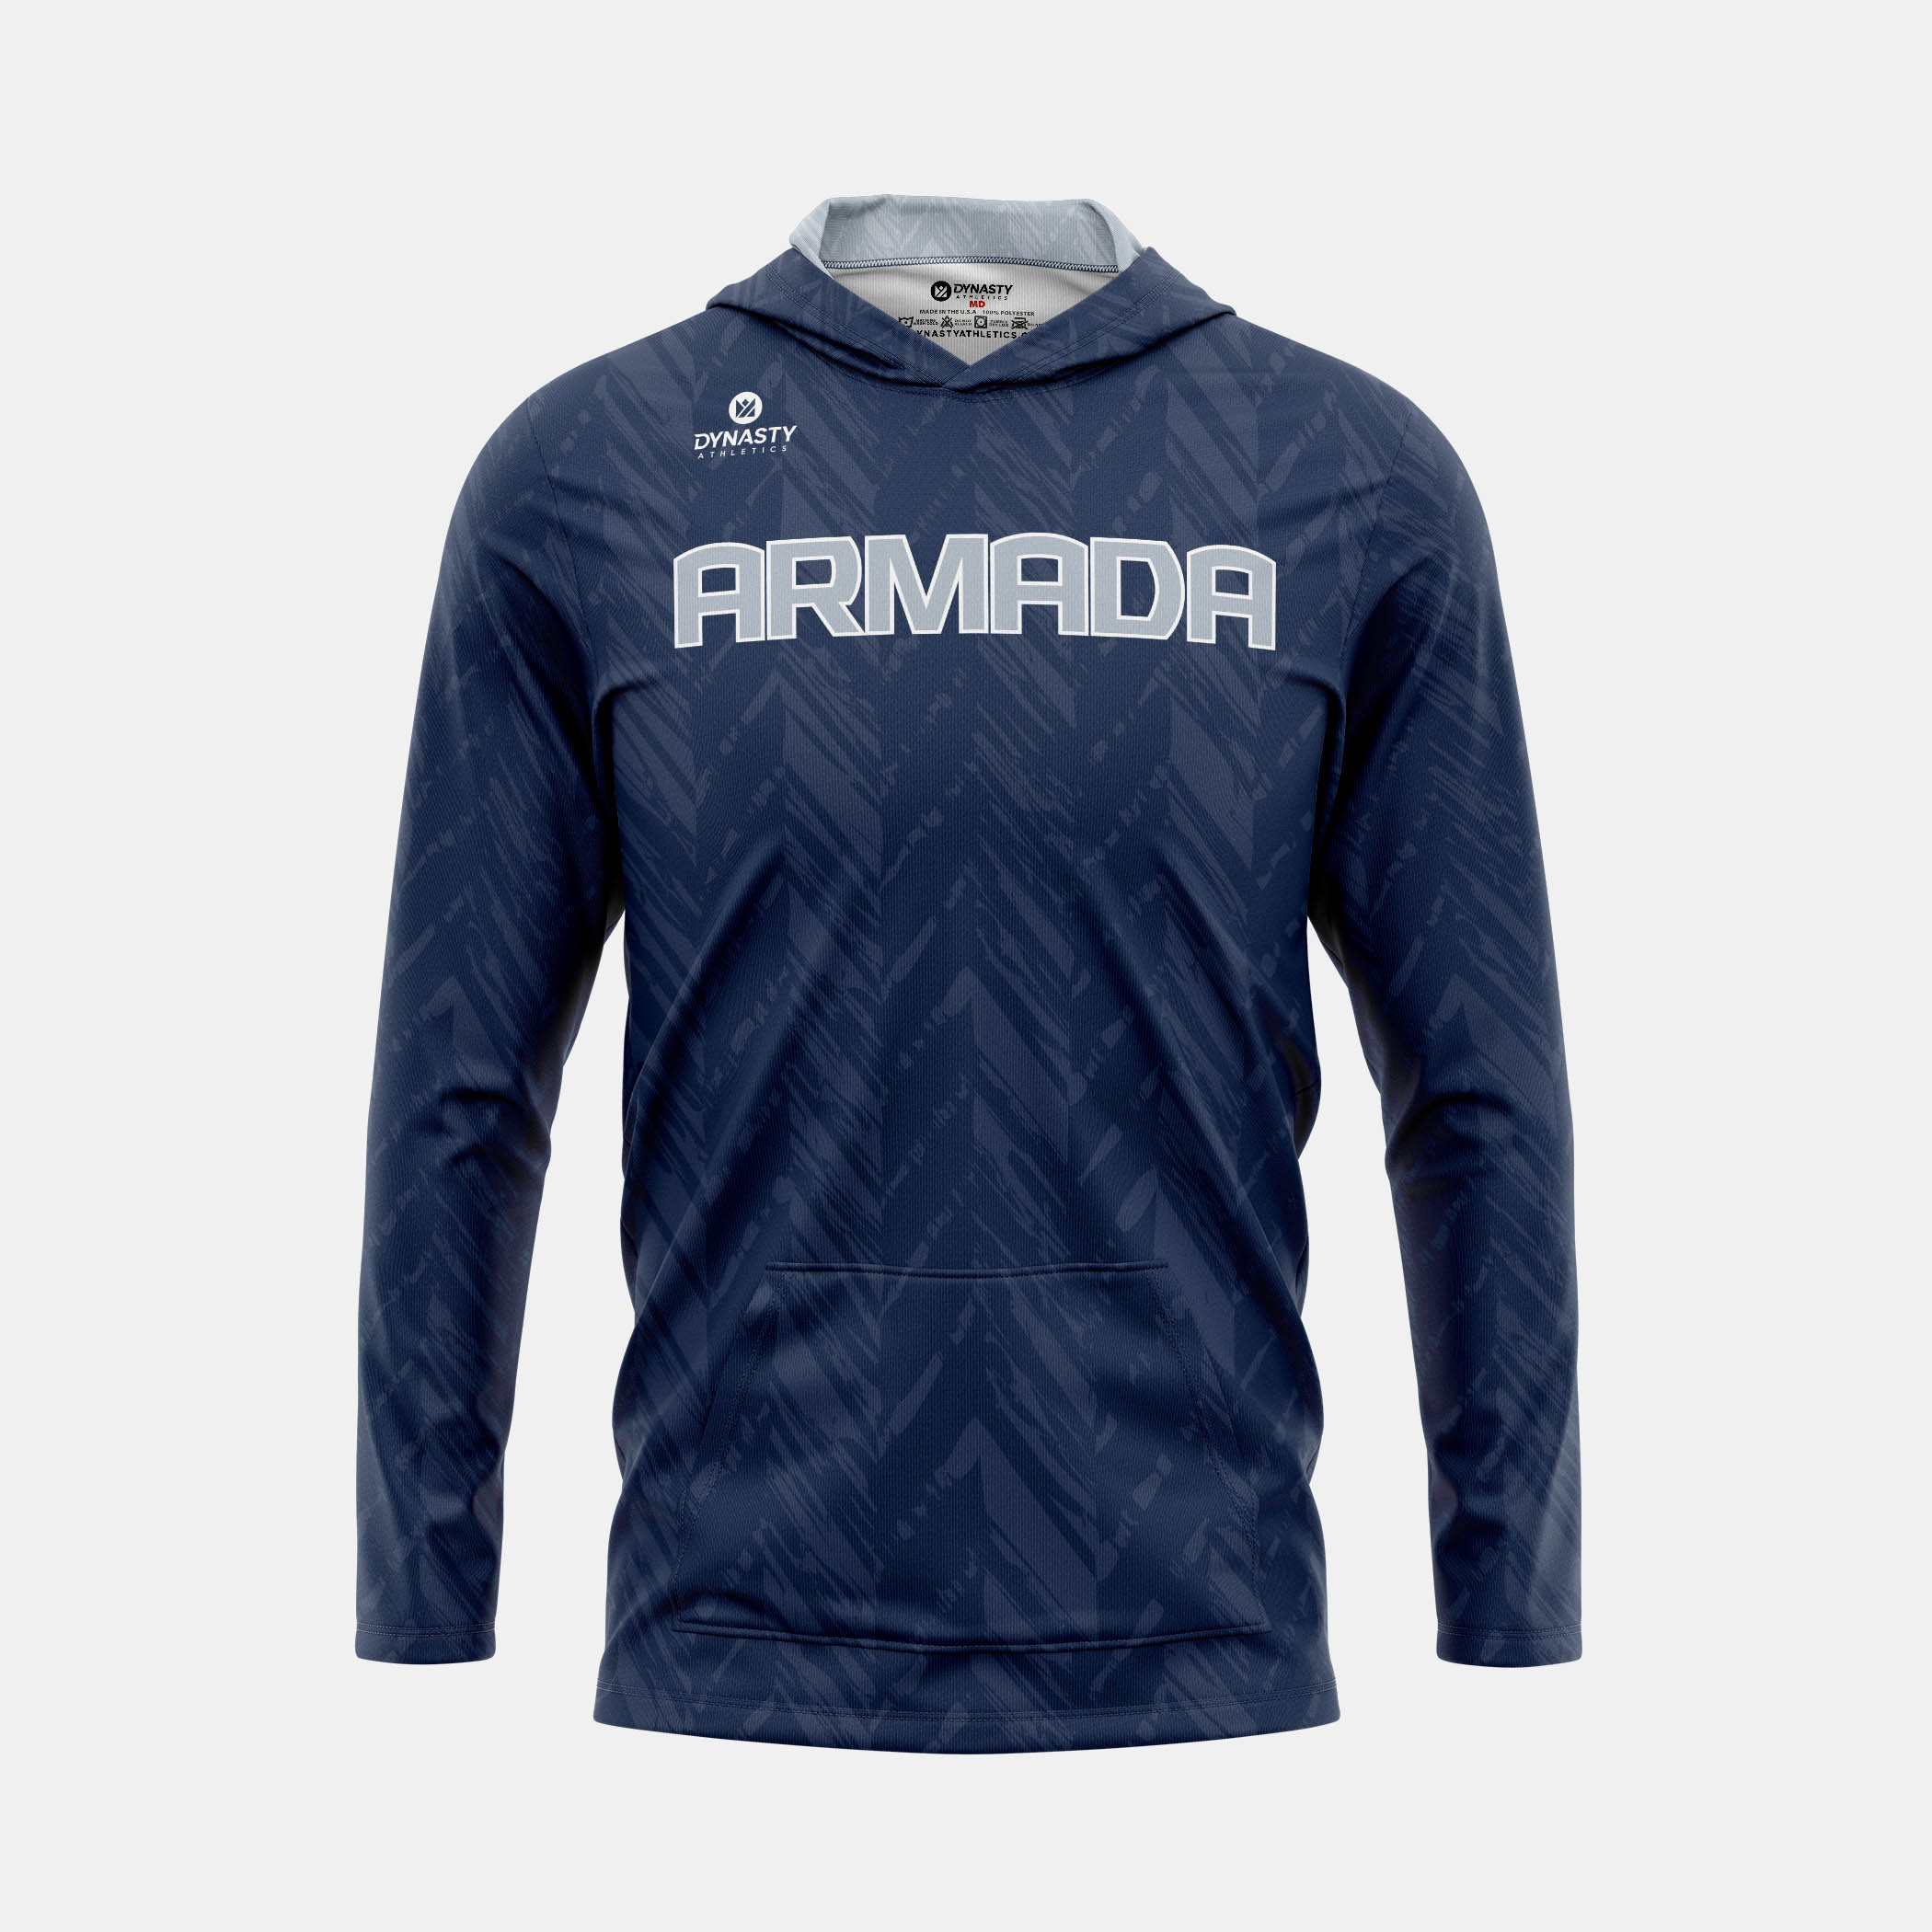 Armada Hooded Pullover Front View 1